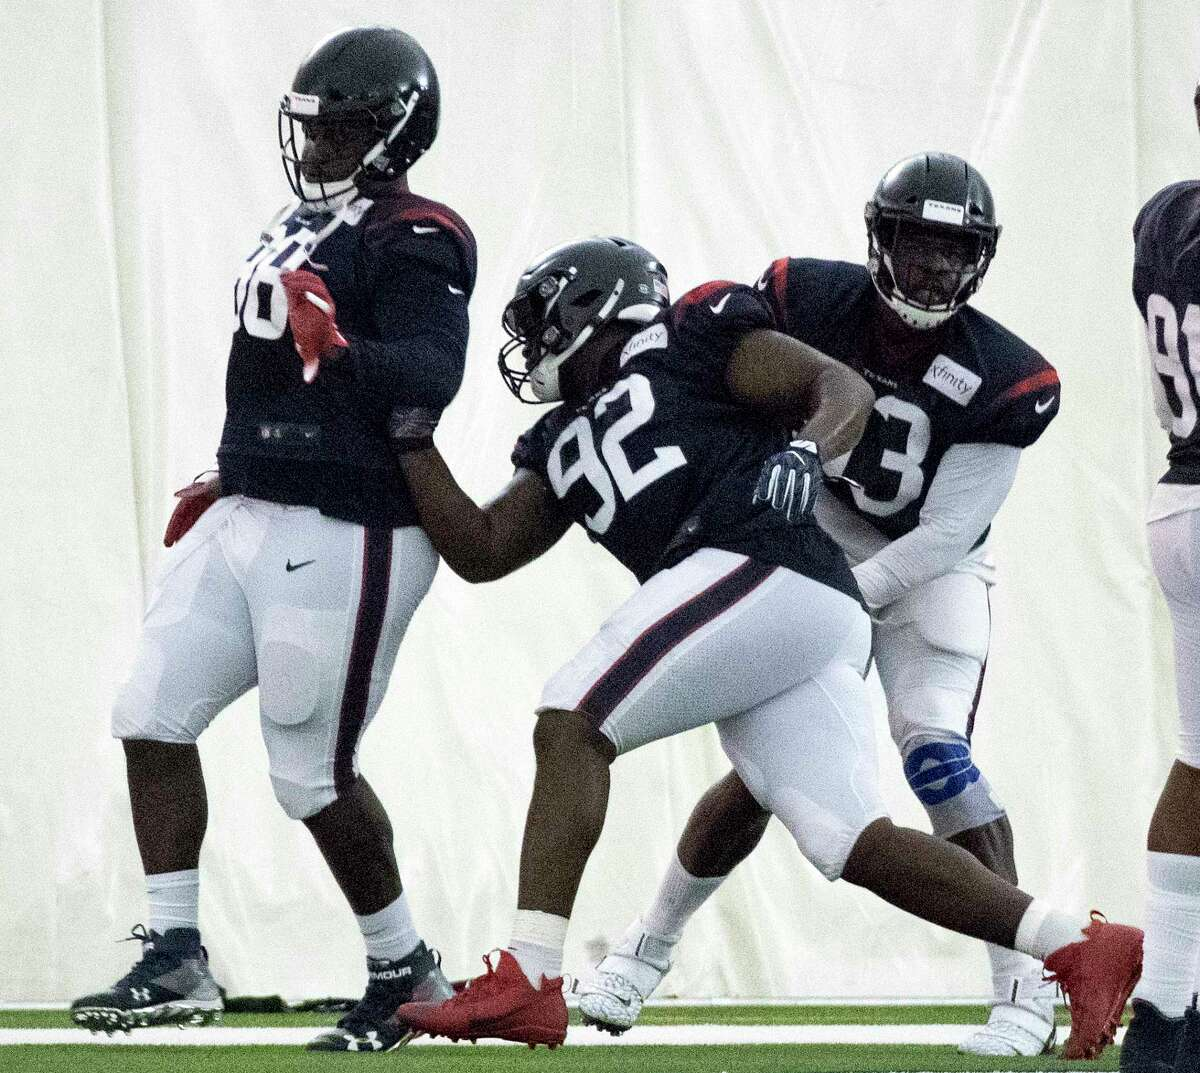 Houston Texans nose tackle Brandon Dunn (92) runs a drill against defensive ends D.J. Reader (98) and Joel Heath (93) during training camp at the Methodist Training Center on Wednesday, July 31, 2019, in Houston.